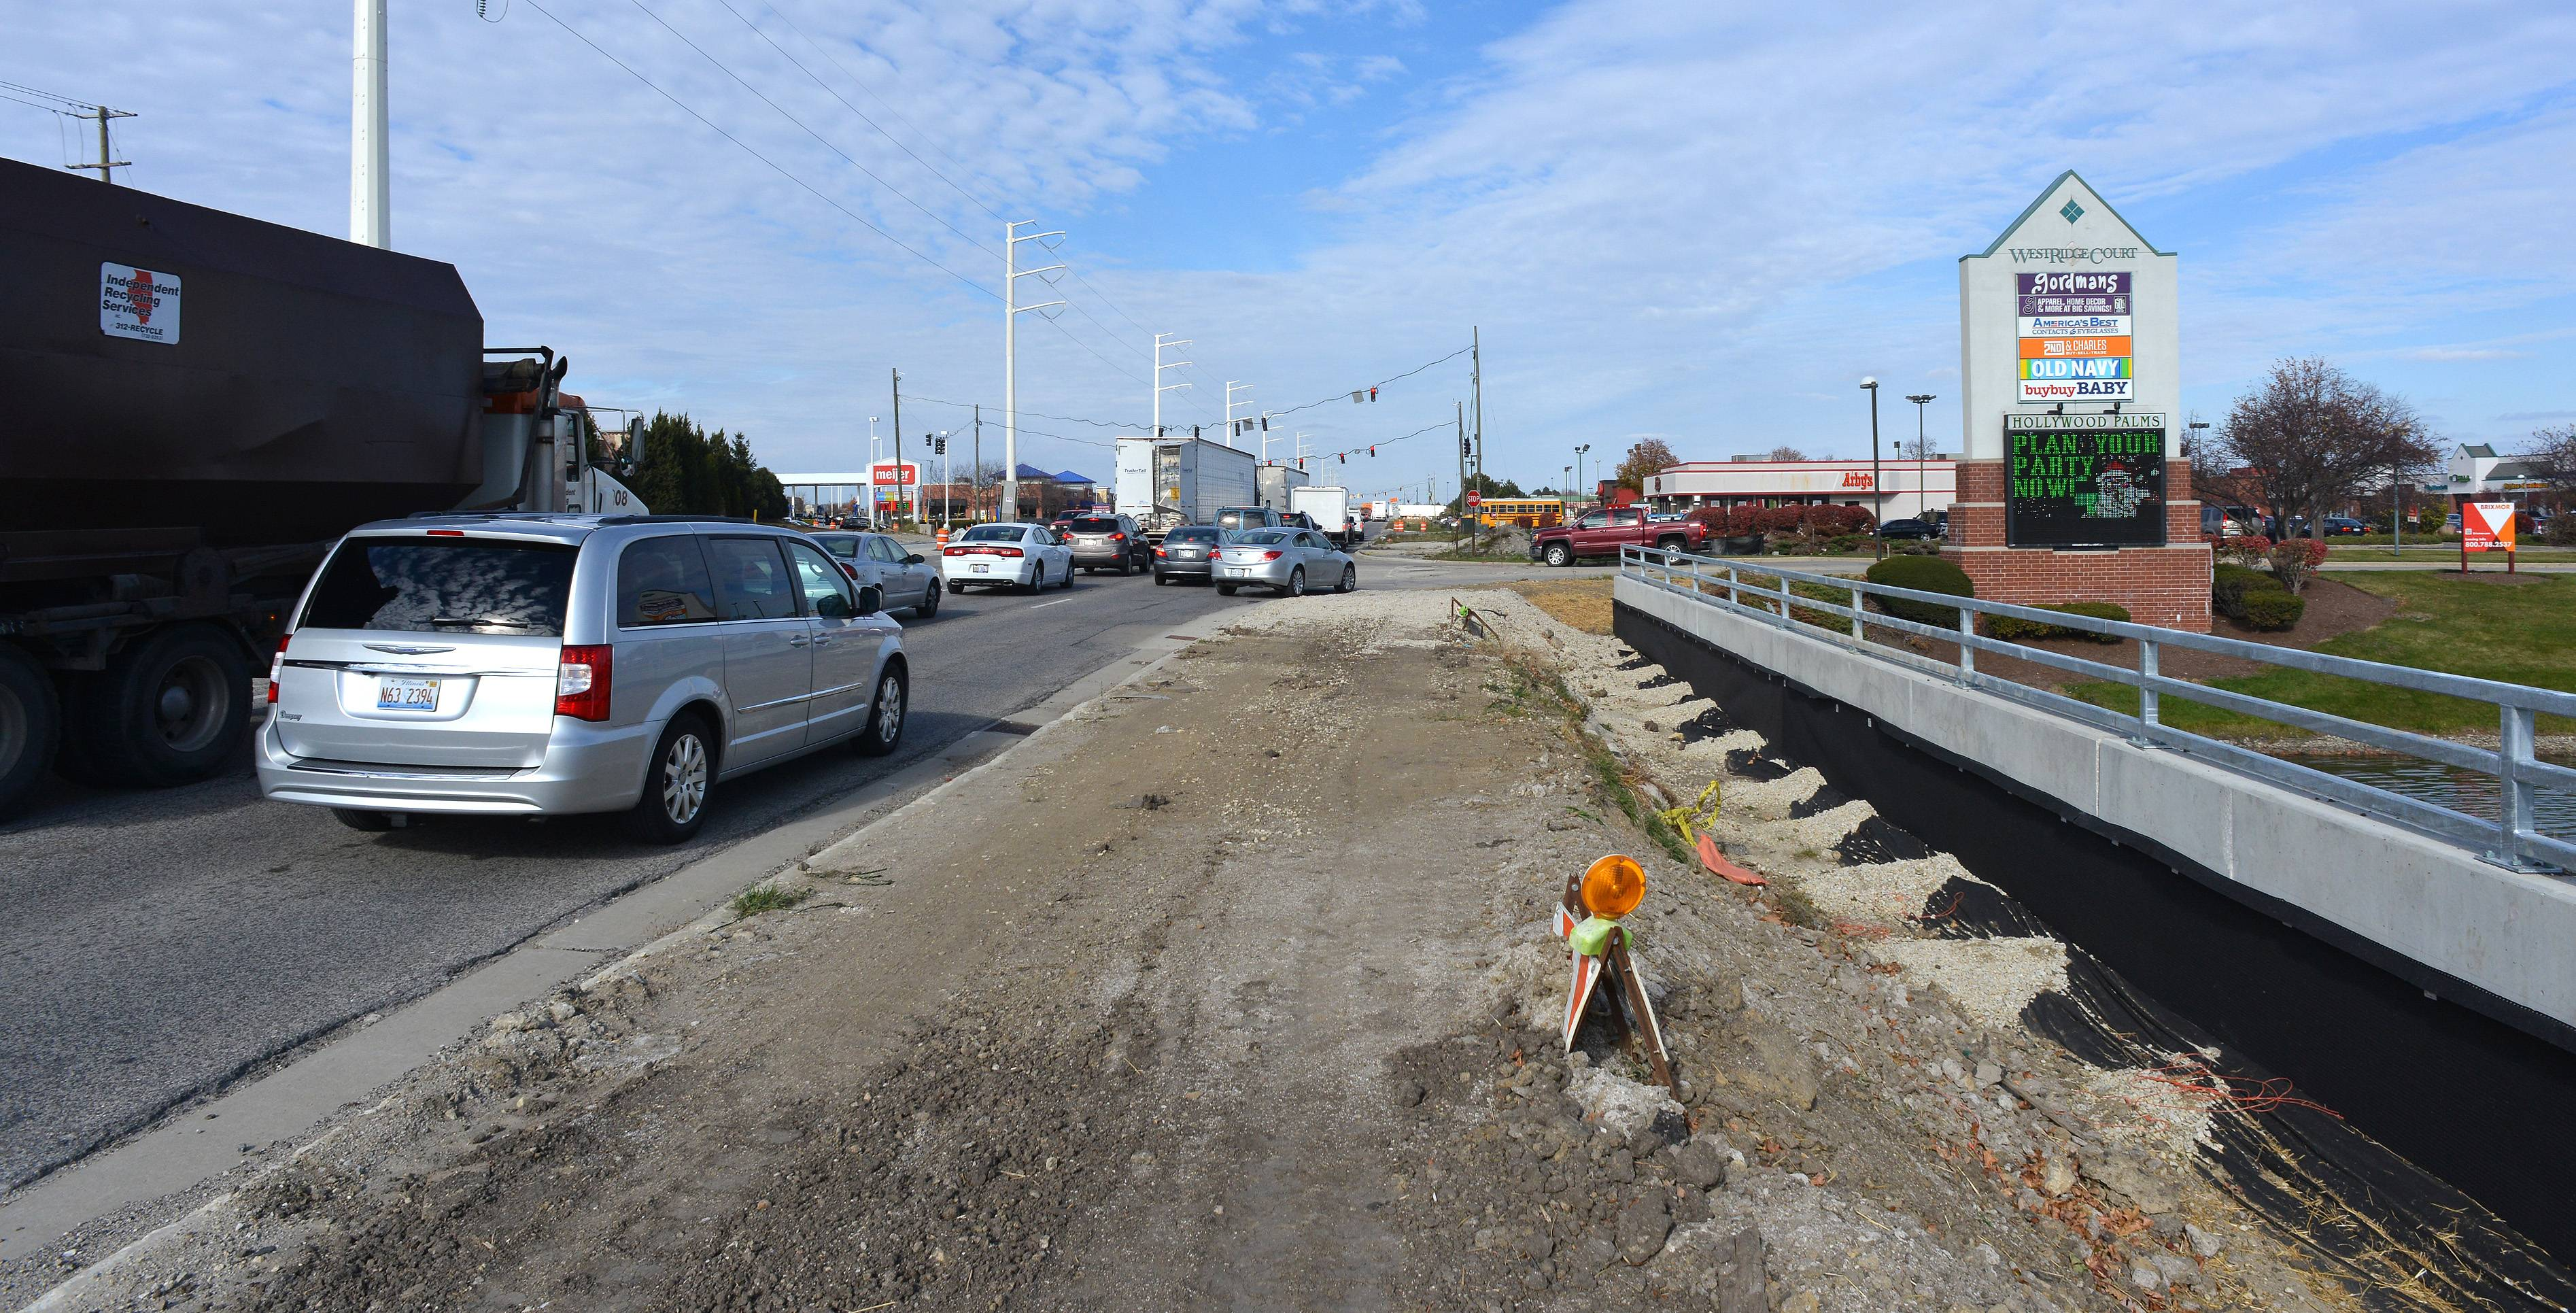 Naperville's Route 59 businesses feeling construction 'aggravation'